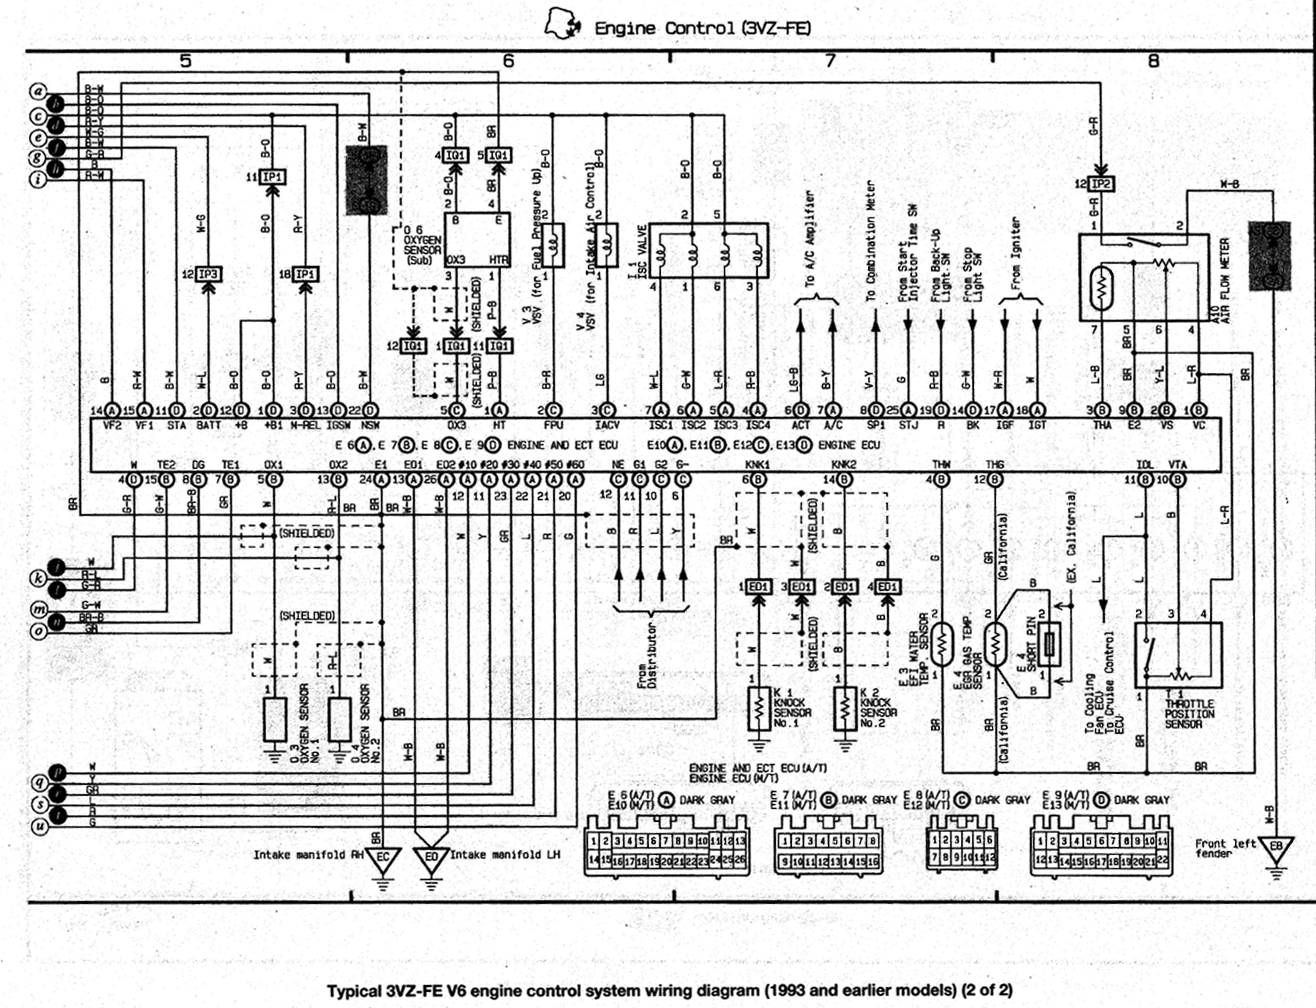 7c0f81 Toyota 3sge Wiring Diagram E Bases | Electrical diagram, Cool  pictures, Diagram | Beams Wiring Diagram |  | Pinterest